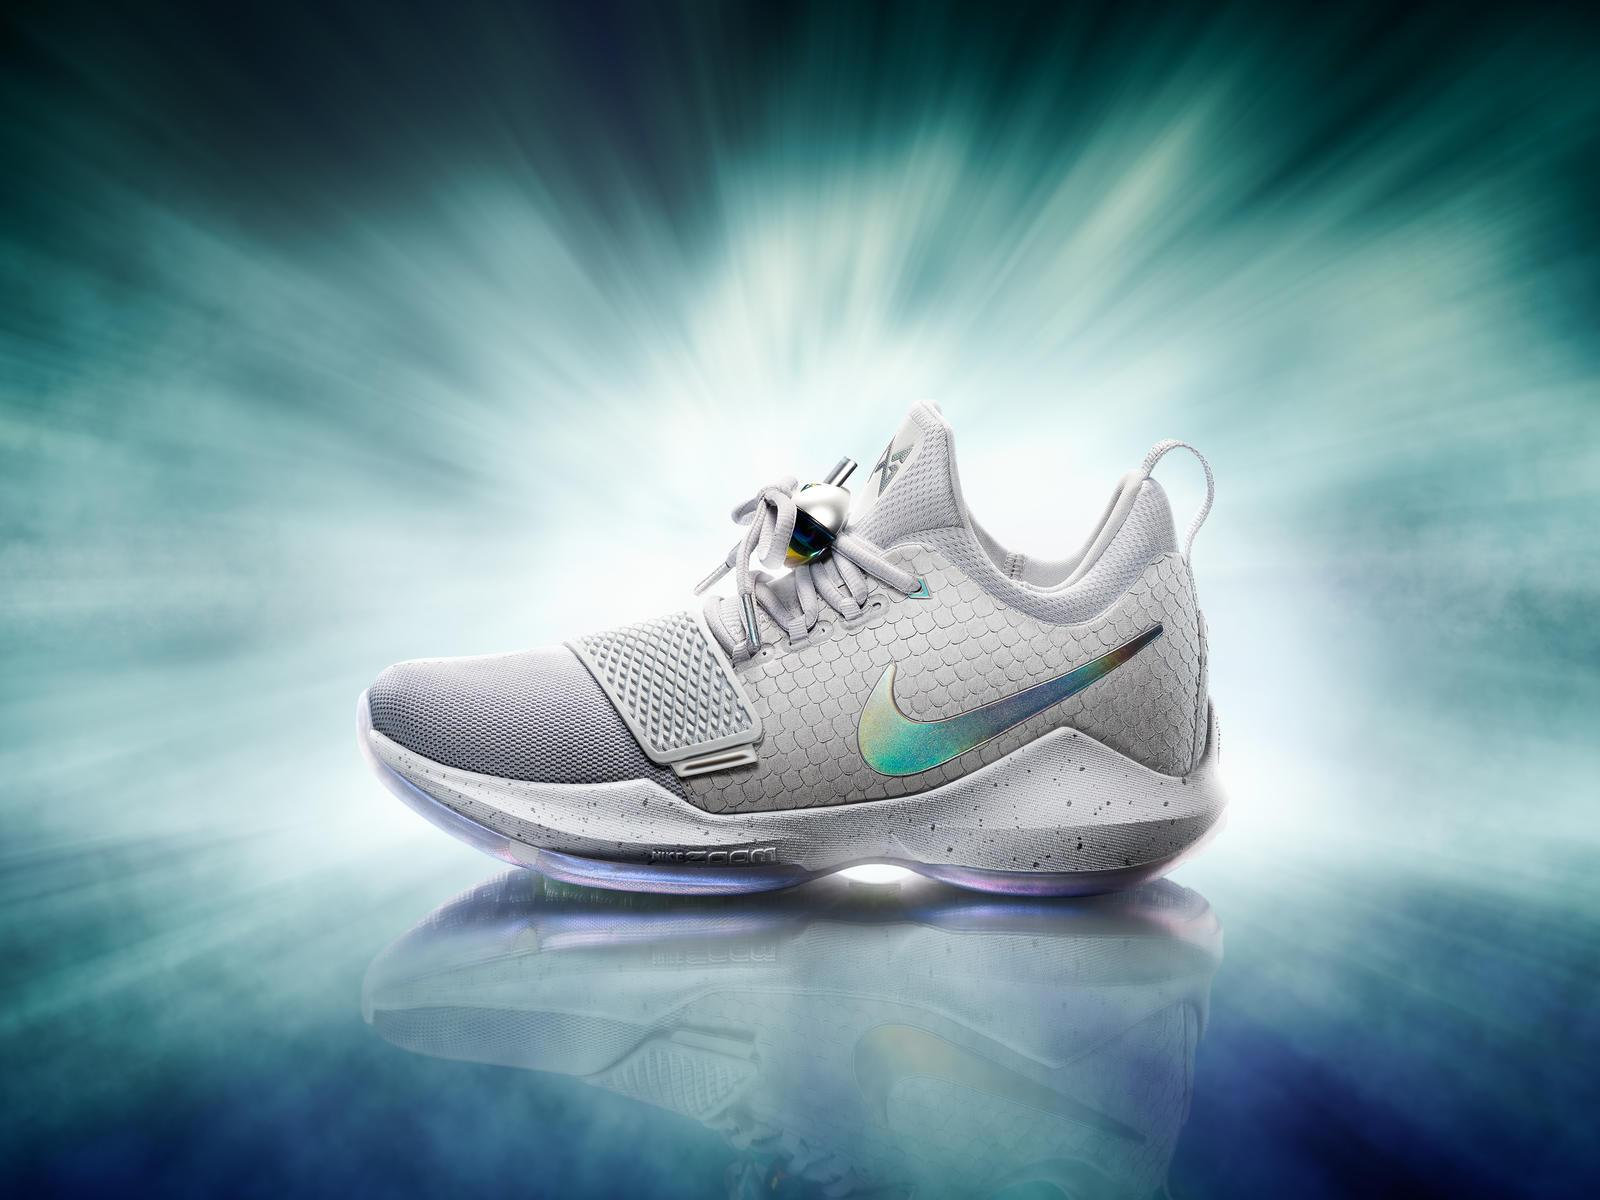 http://s3.amazonaws.com/nikeinc/assets/65167/16-420_Nike_PG1_Hero_Single_Gray-03a_native_1600.jpg?1483838871